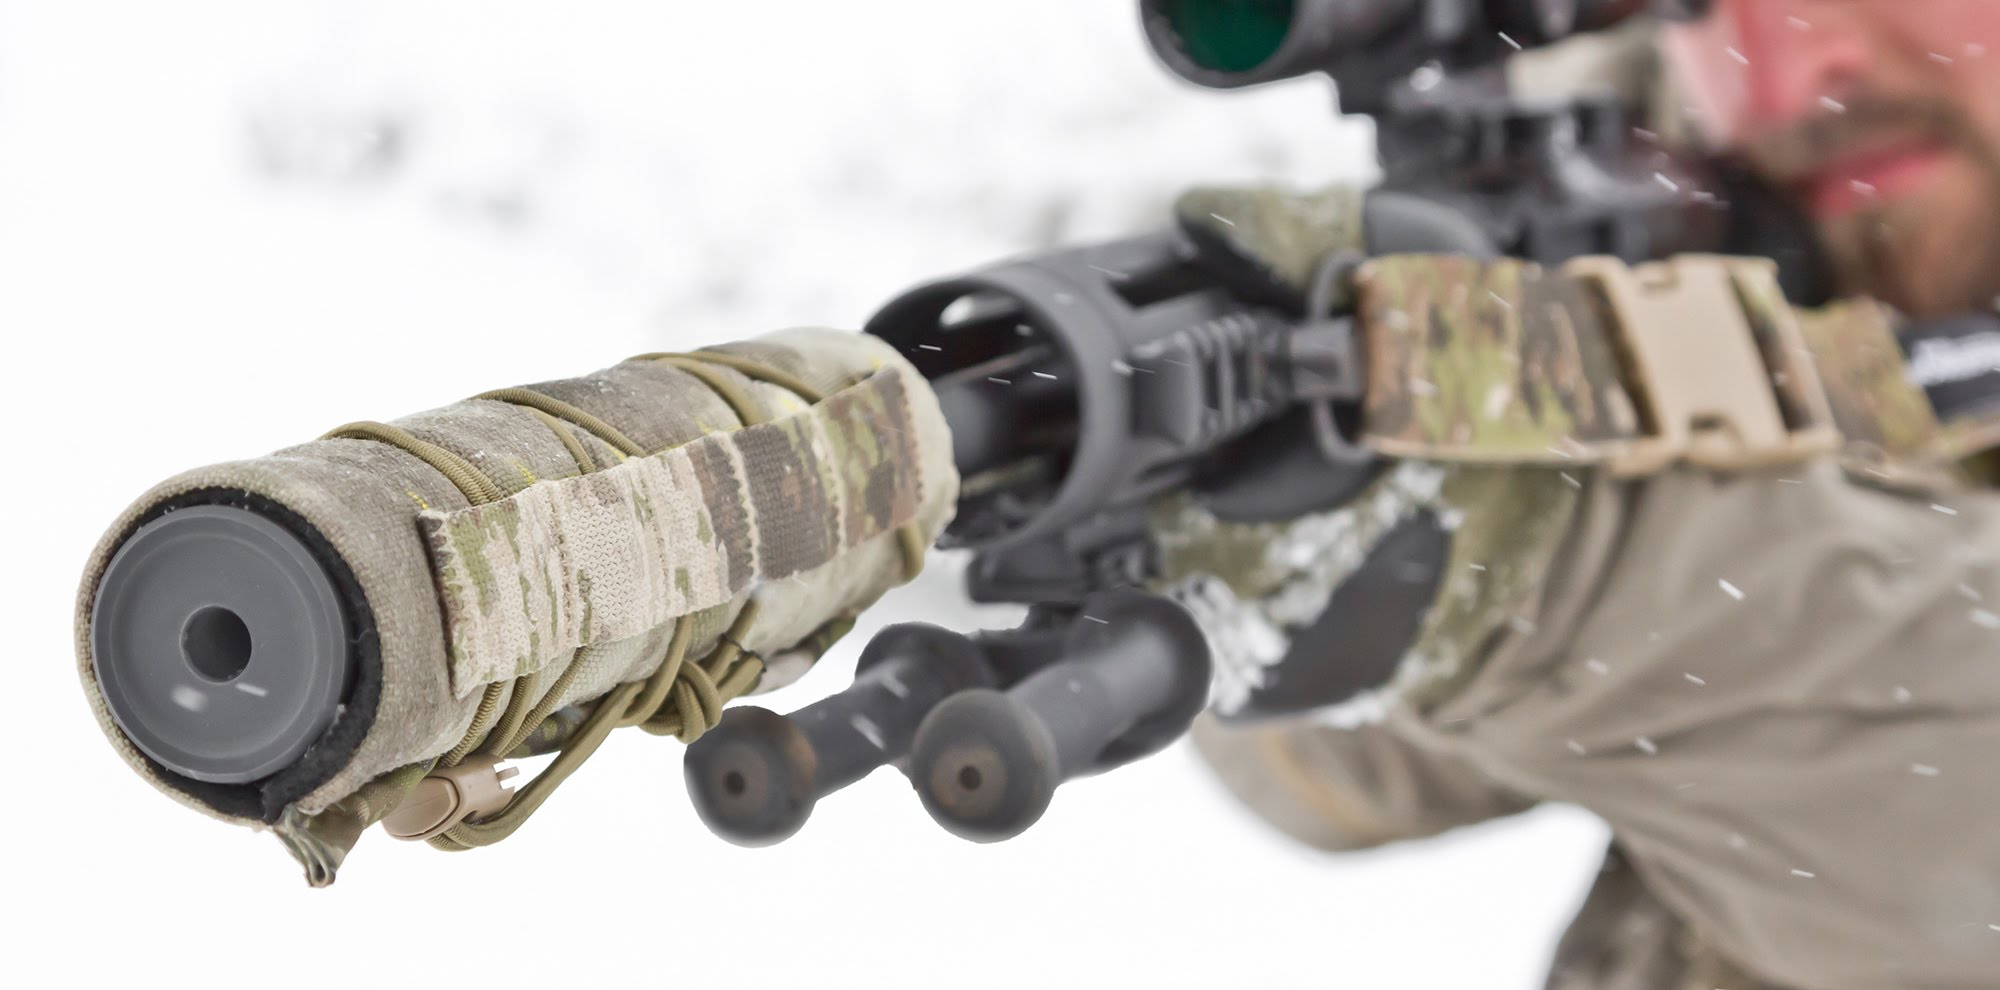 Silencer Covers Heat Amp Mirage Mitigation Systems The